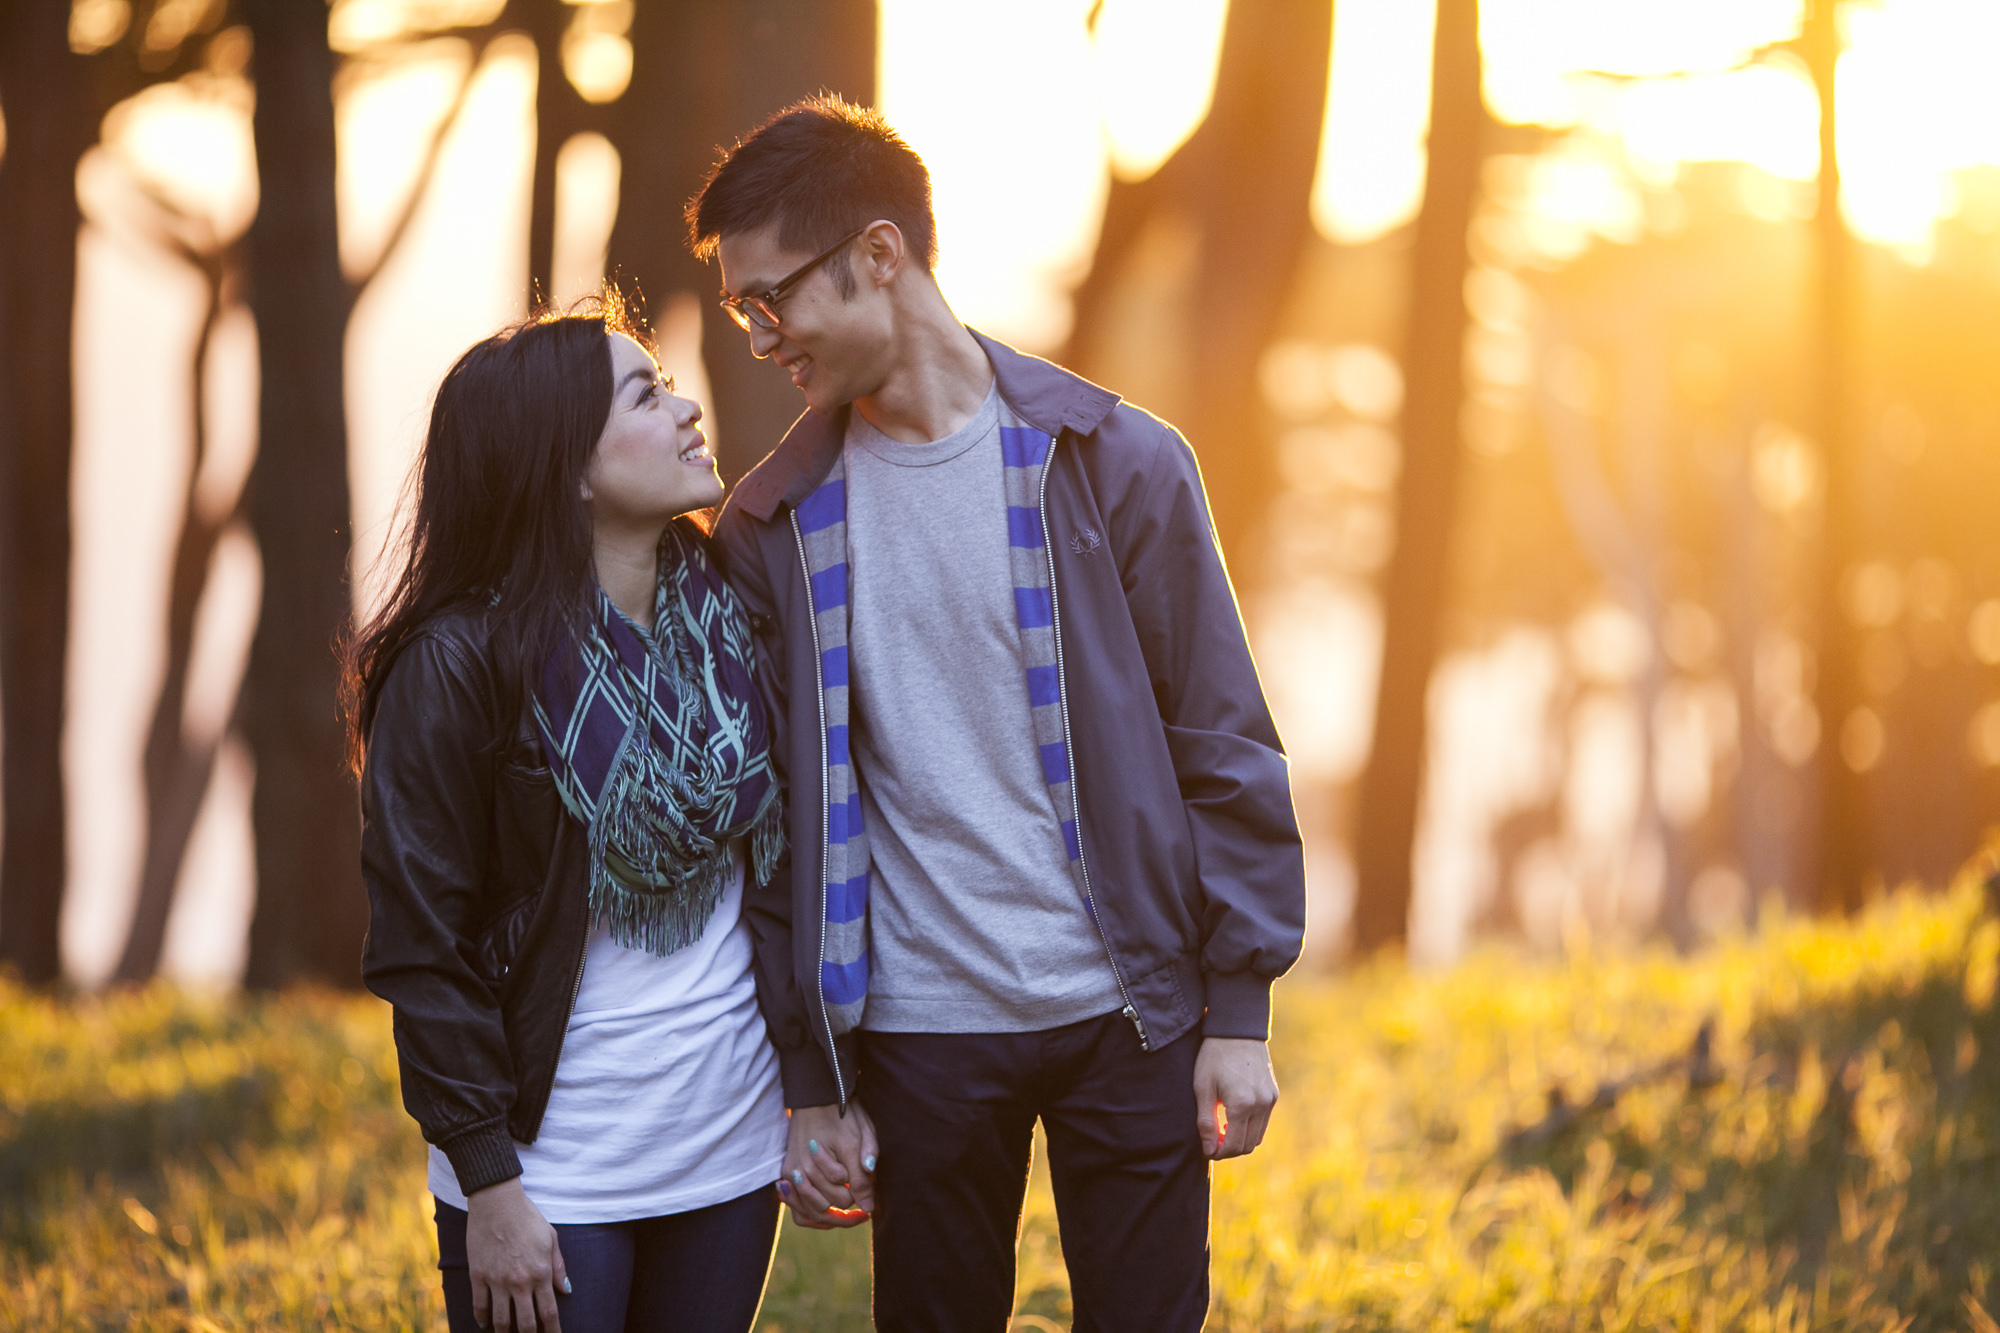 Engagement session at Lands End in San Francisco with golden sunset behind